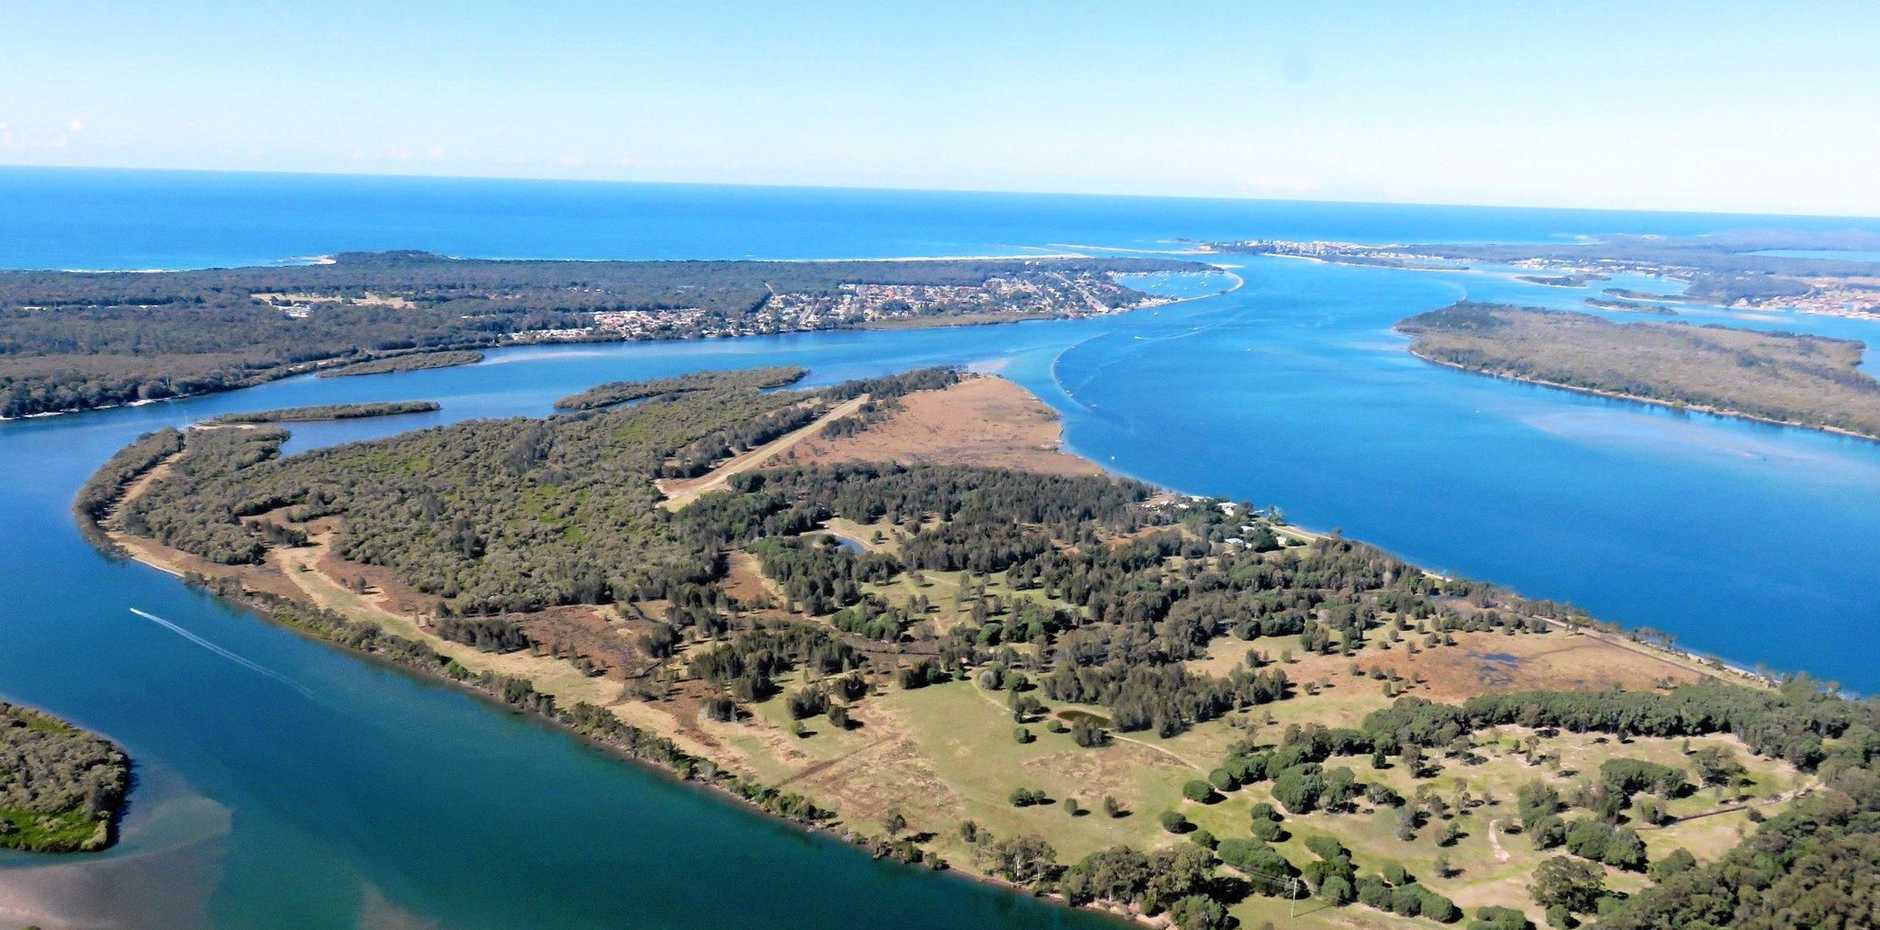 The Clarence River is the setting for the towns of Iluka (left) and Yamba (right